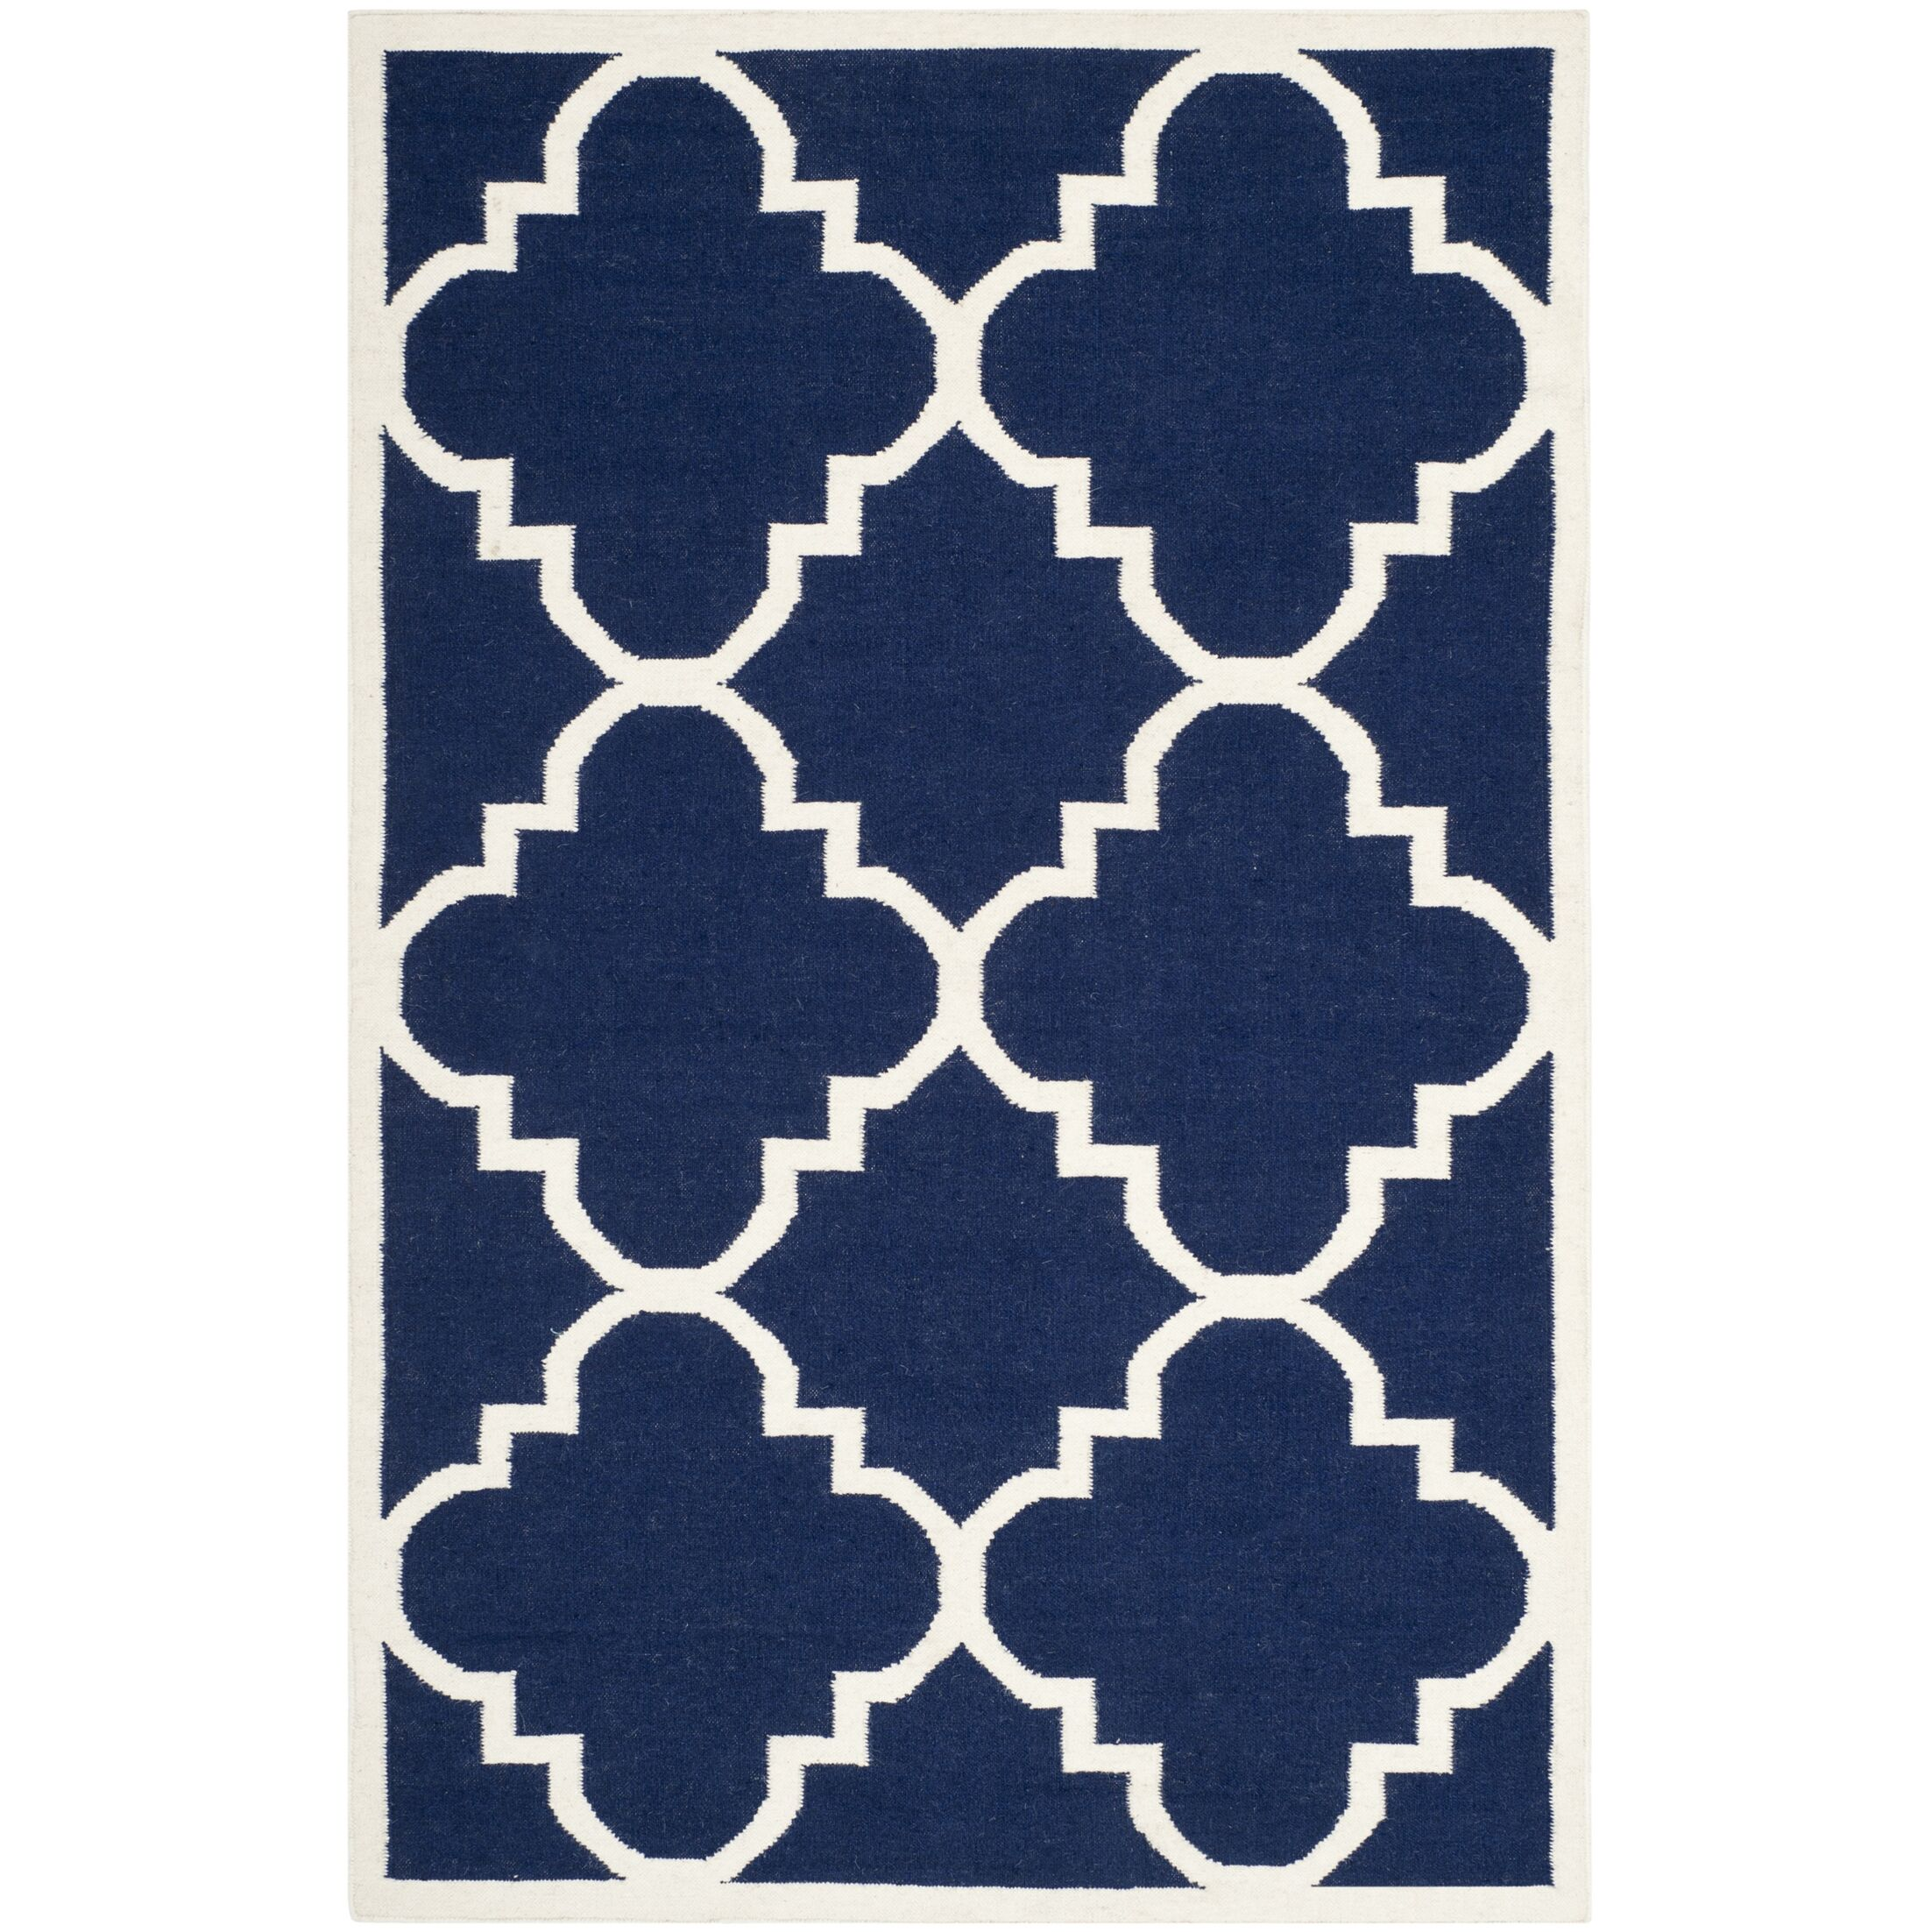 Dhurries Hand-Woven Wool Navy/Ivory Area Rug Rug Size: Rectangle 10' x 14'